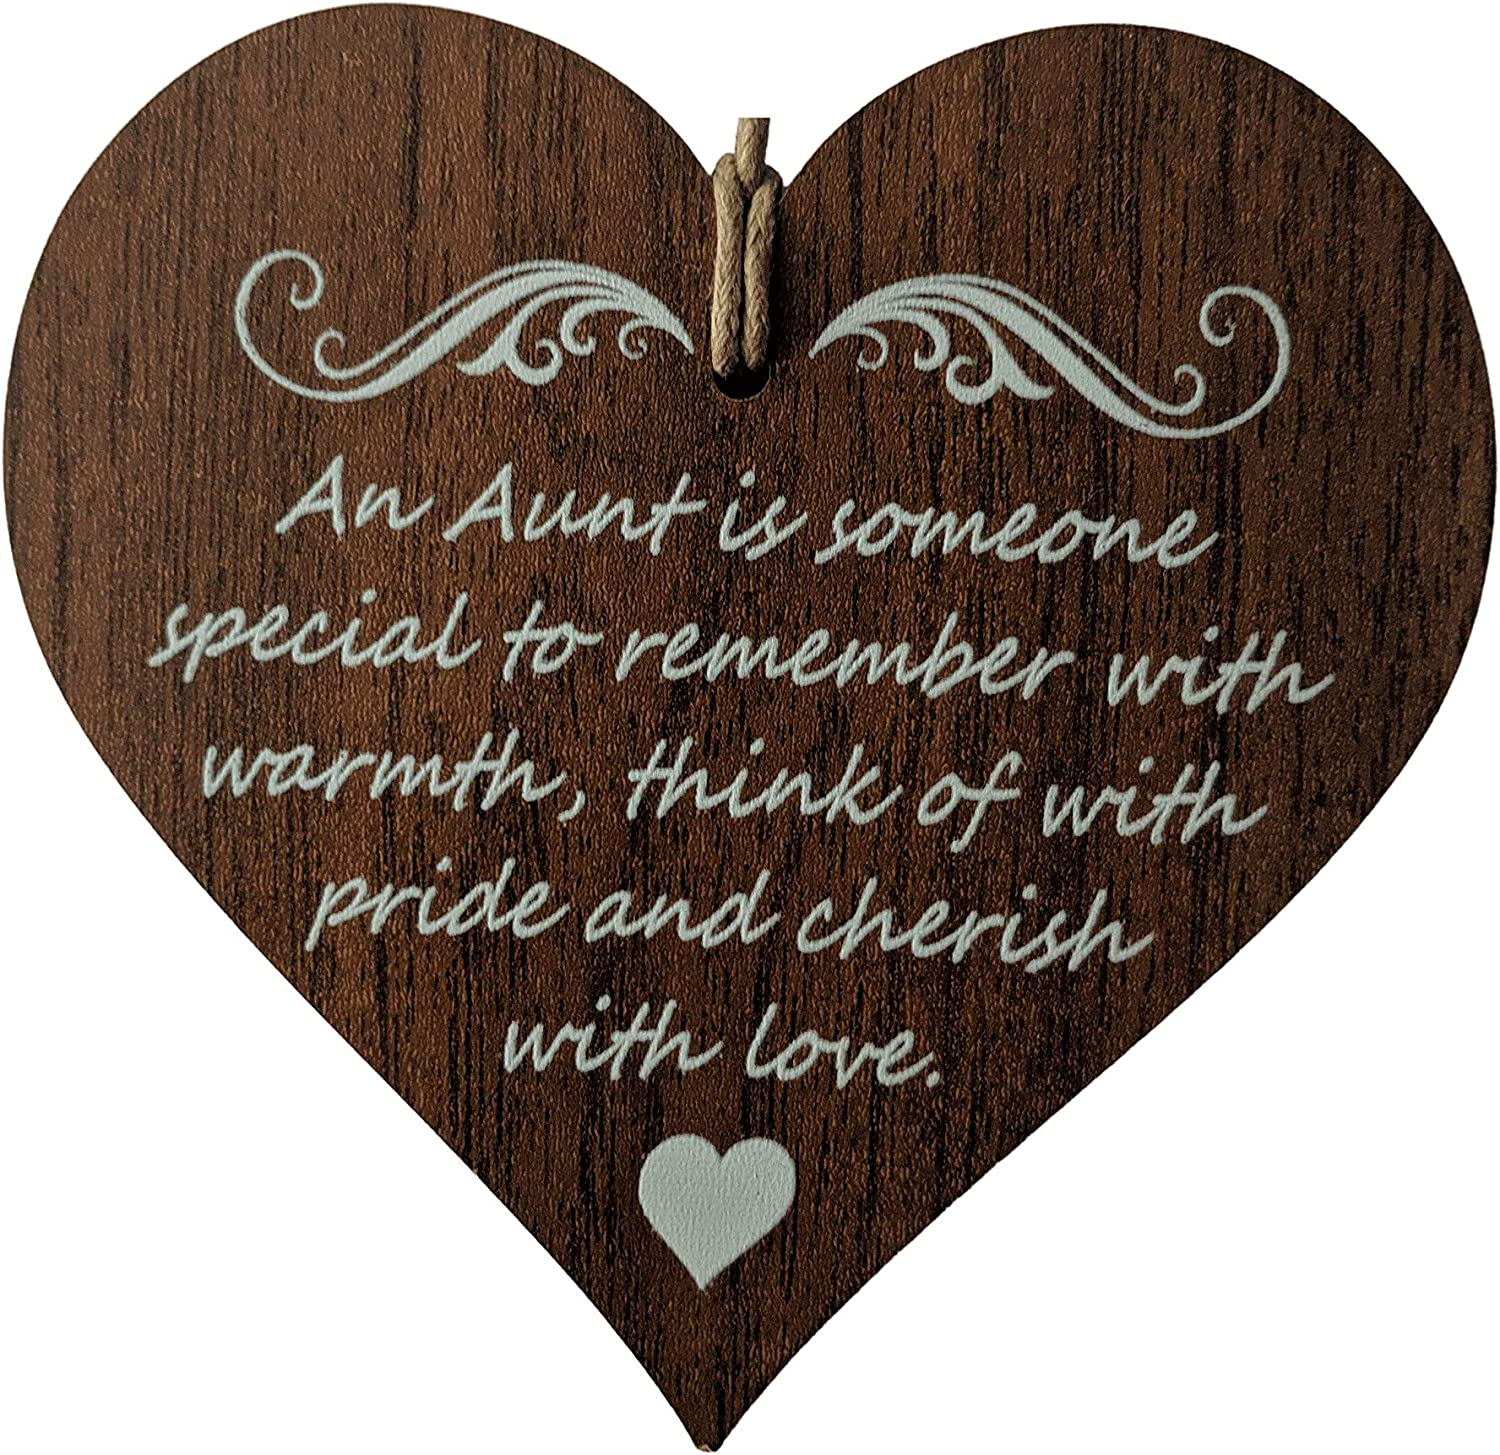 Wooden & Antique - an Aunt is Someone Special to Remember with Warmth, Think of with Pride and Cherish with Love. - Wooden Hanging Heart Plaque-Sign Gift